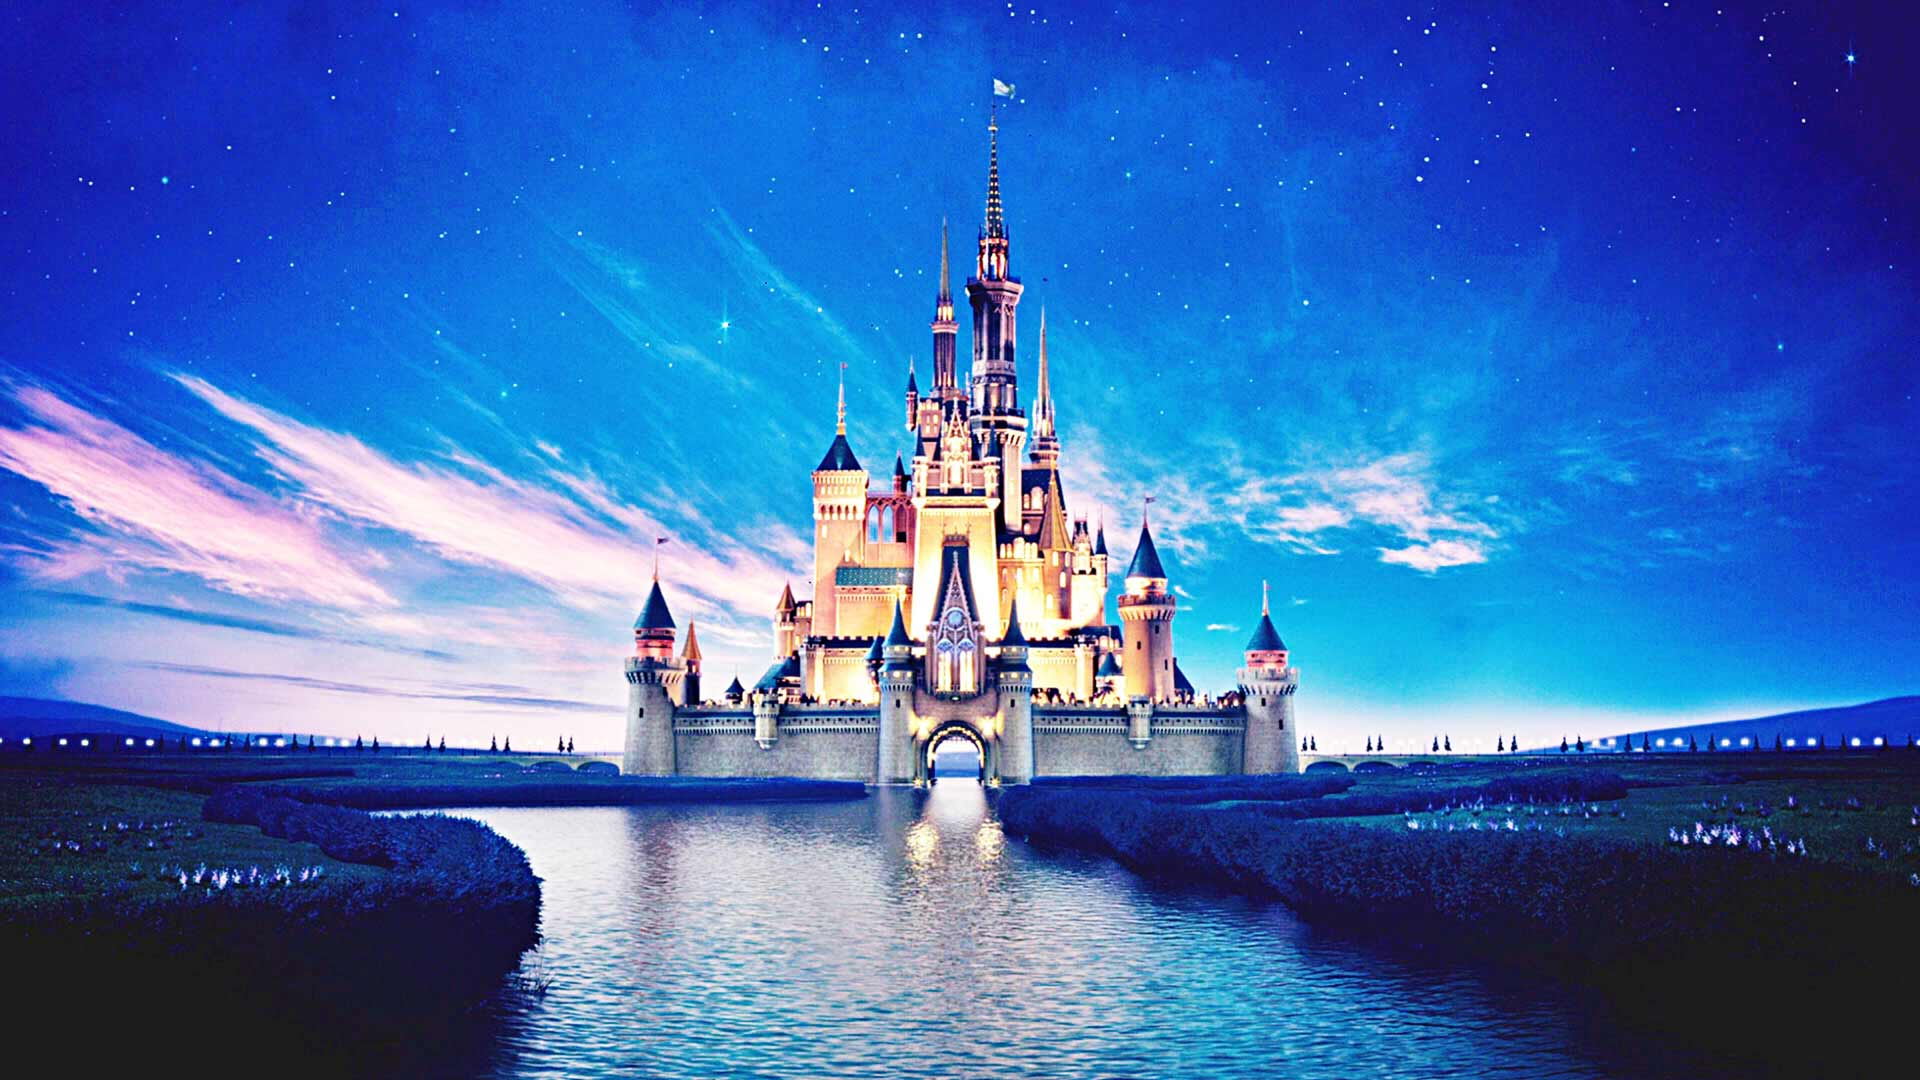 disney castle desktop wallpaper